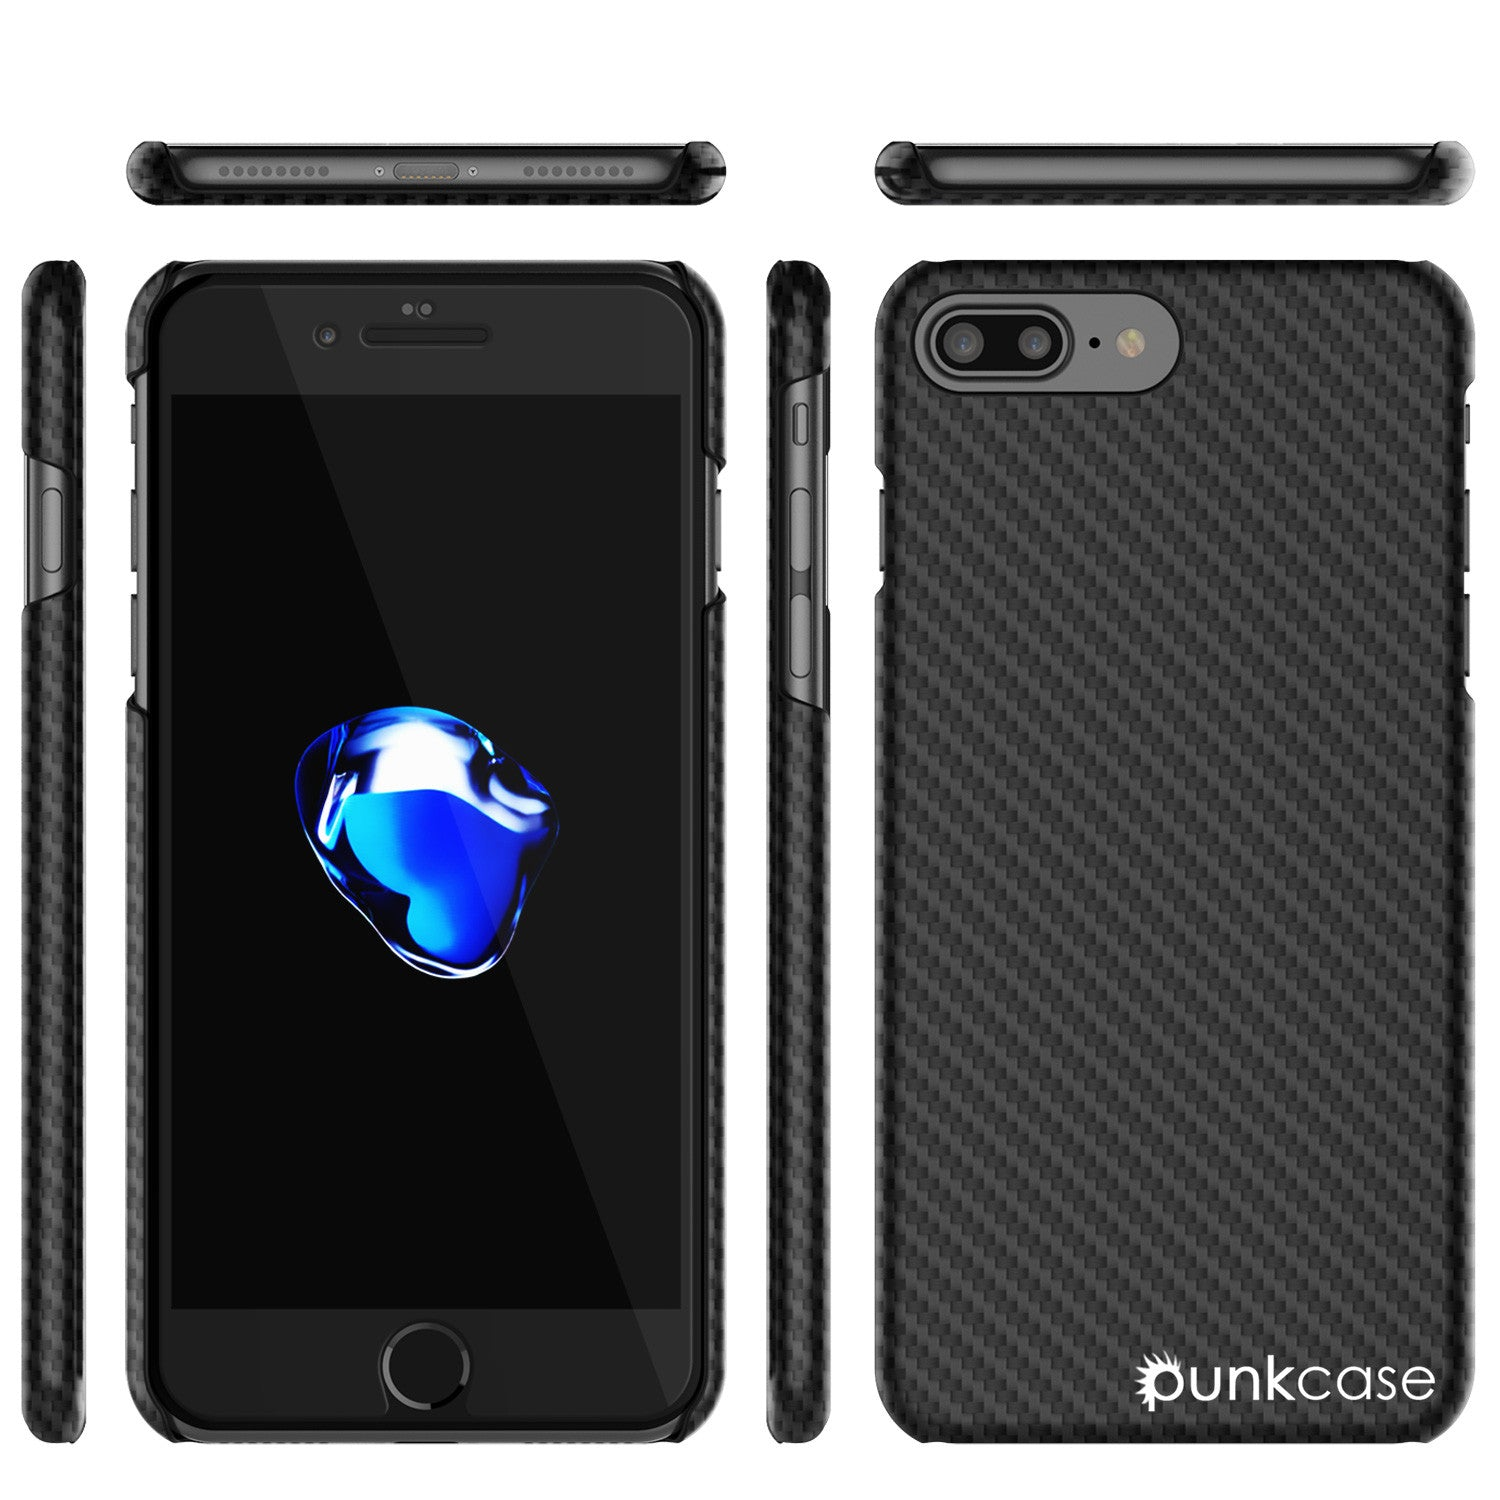 iPhone 8+ Plus Case - Punkcase CarbonShield Jet Black